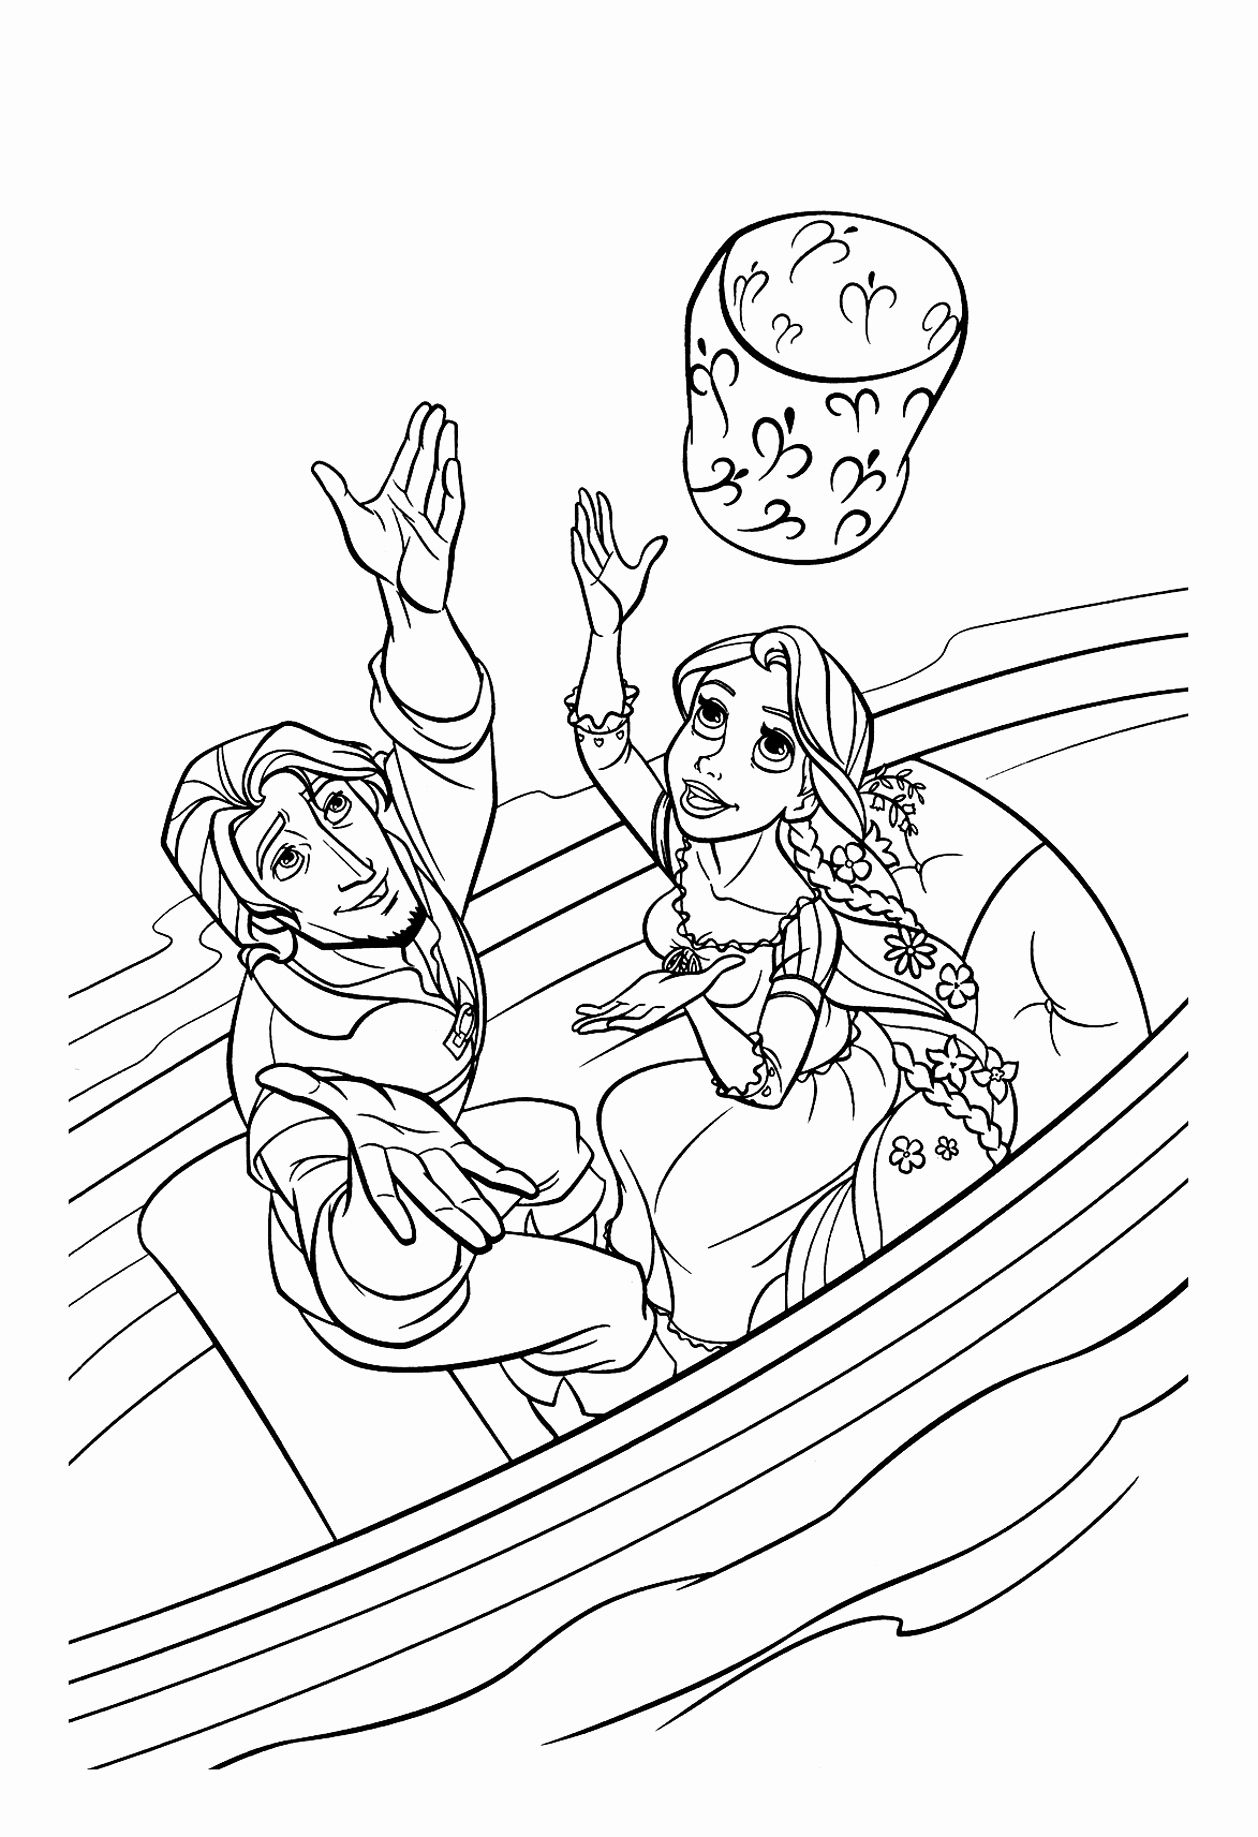 Disney Flynn Rider And Pascal Coloring Pages For Kids Tangled Coloring Pages Princess Coloring Pages Rapunzel Coloring Pages